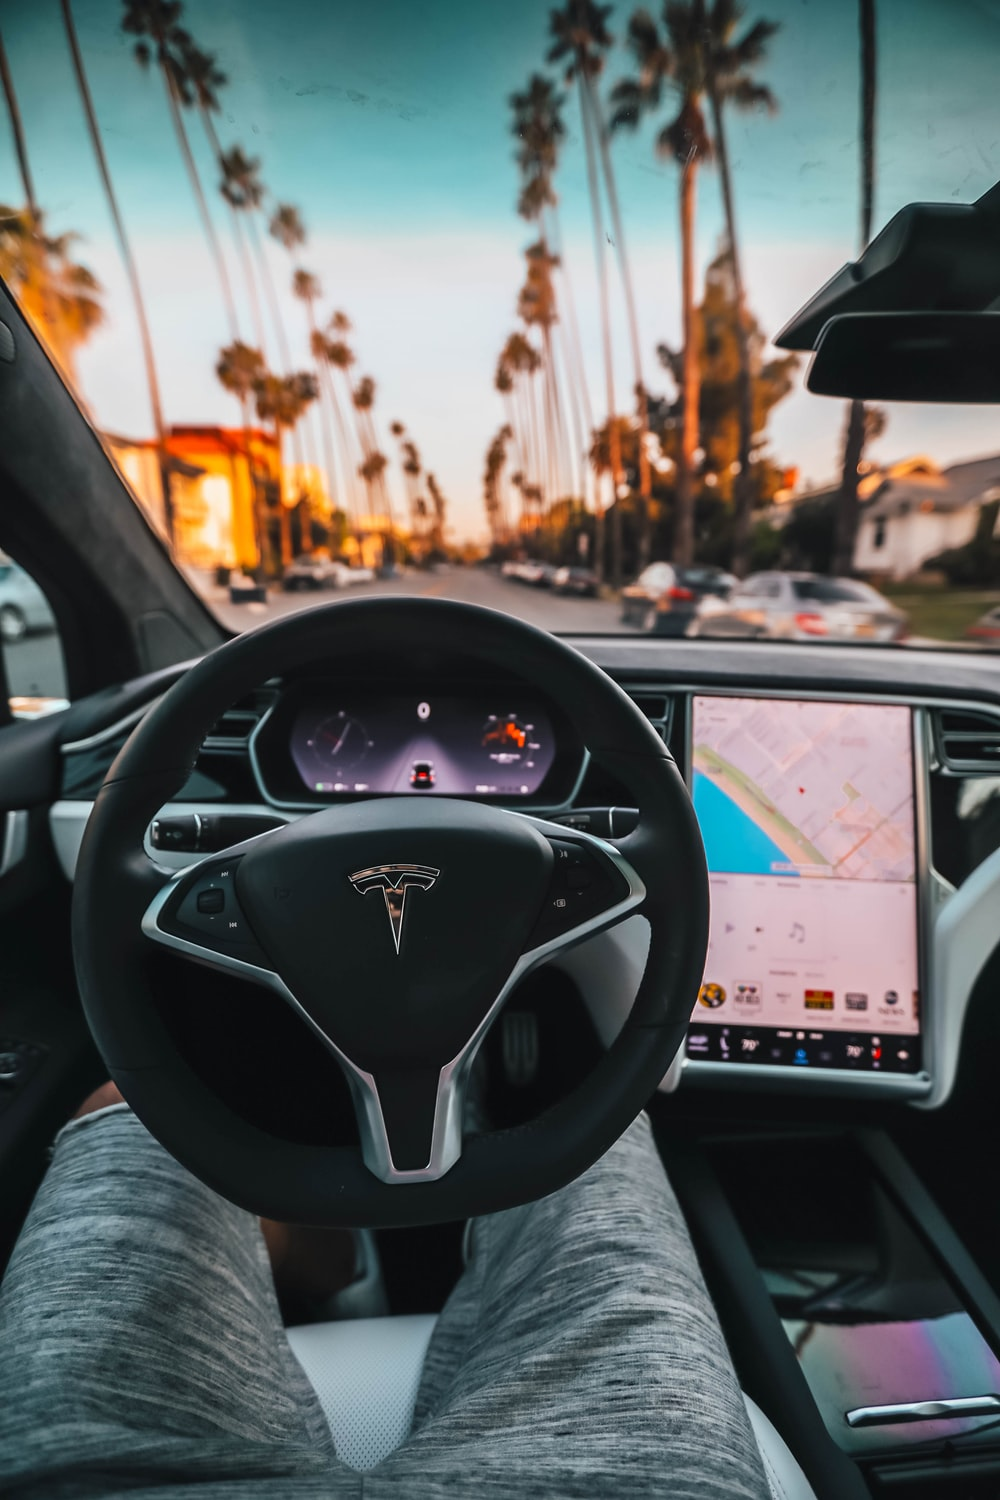 500 Tesla Pictures Hd Download Free Images On Unsplash